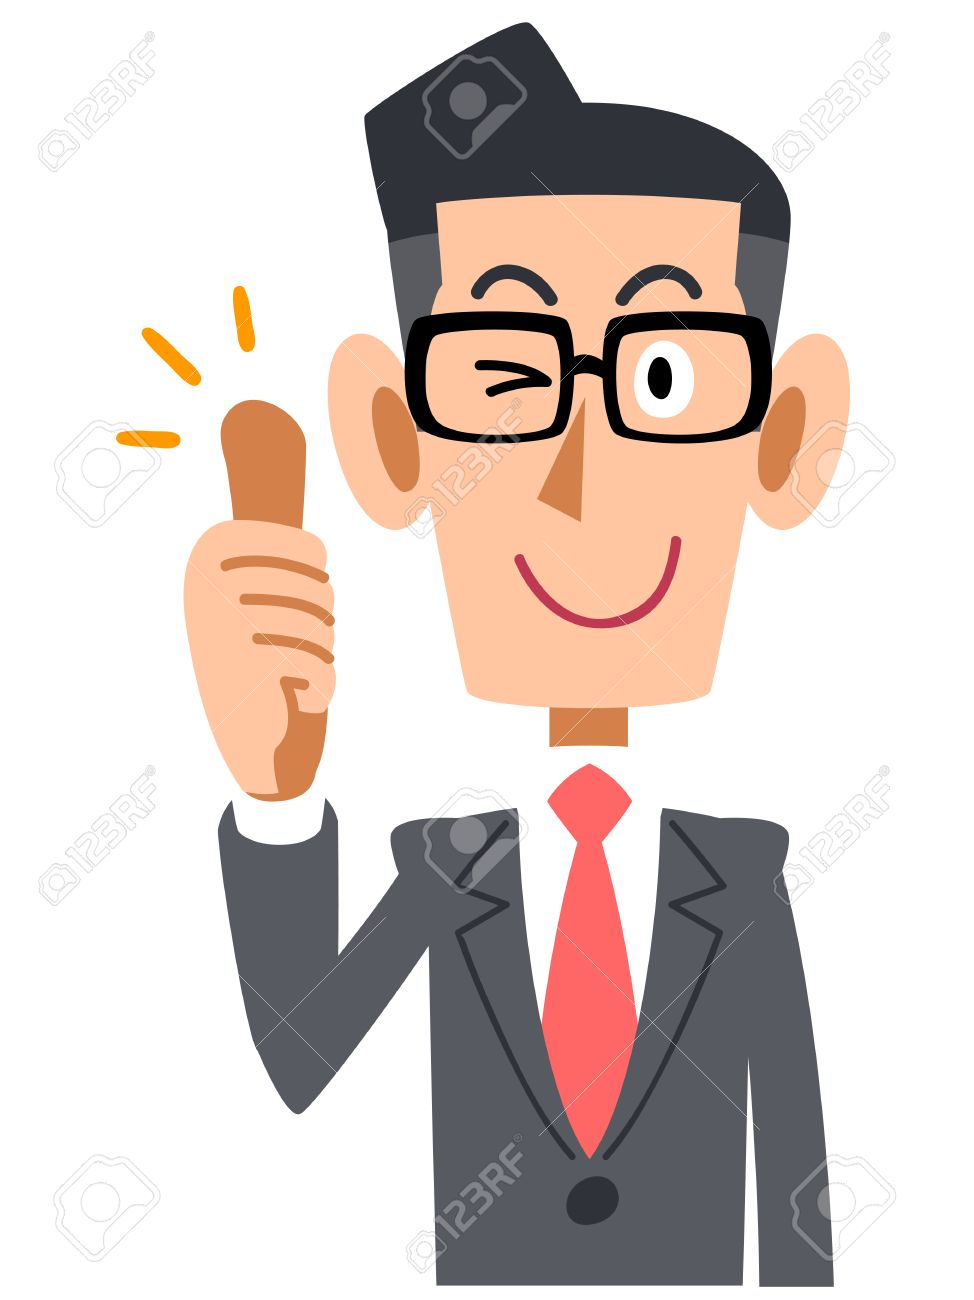 Businessmen, Office workers, salaried, goodjob, thumb up, suit, business, company, Office, work, job, man, young, upper body, bright, praise, rating, good, thumbs, fingers, so, good hand sign, pose, facial gestures, gesture promotional - 43428830